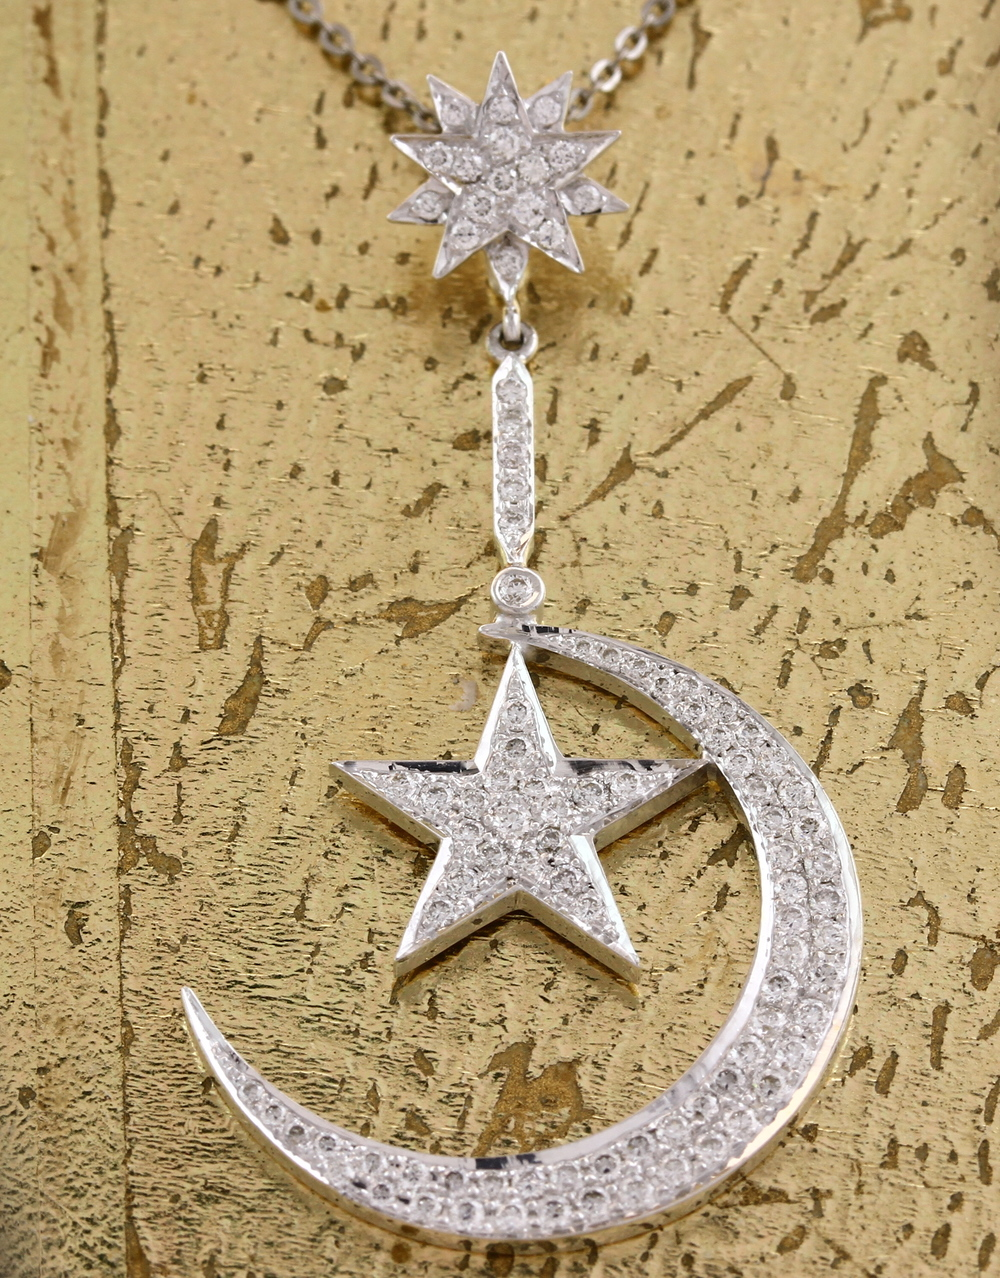 Moon & Star Diamond Pendant - Item No: 0013771